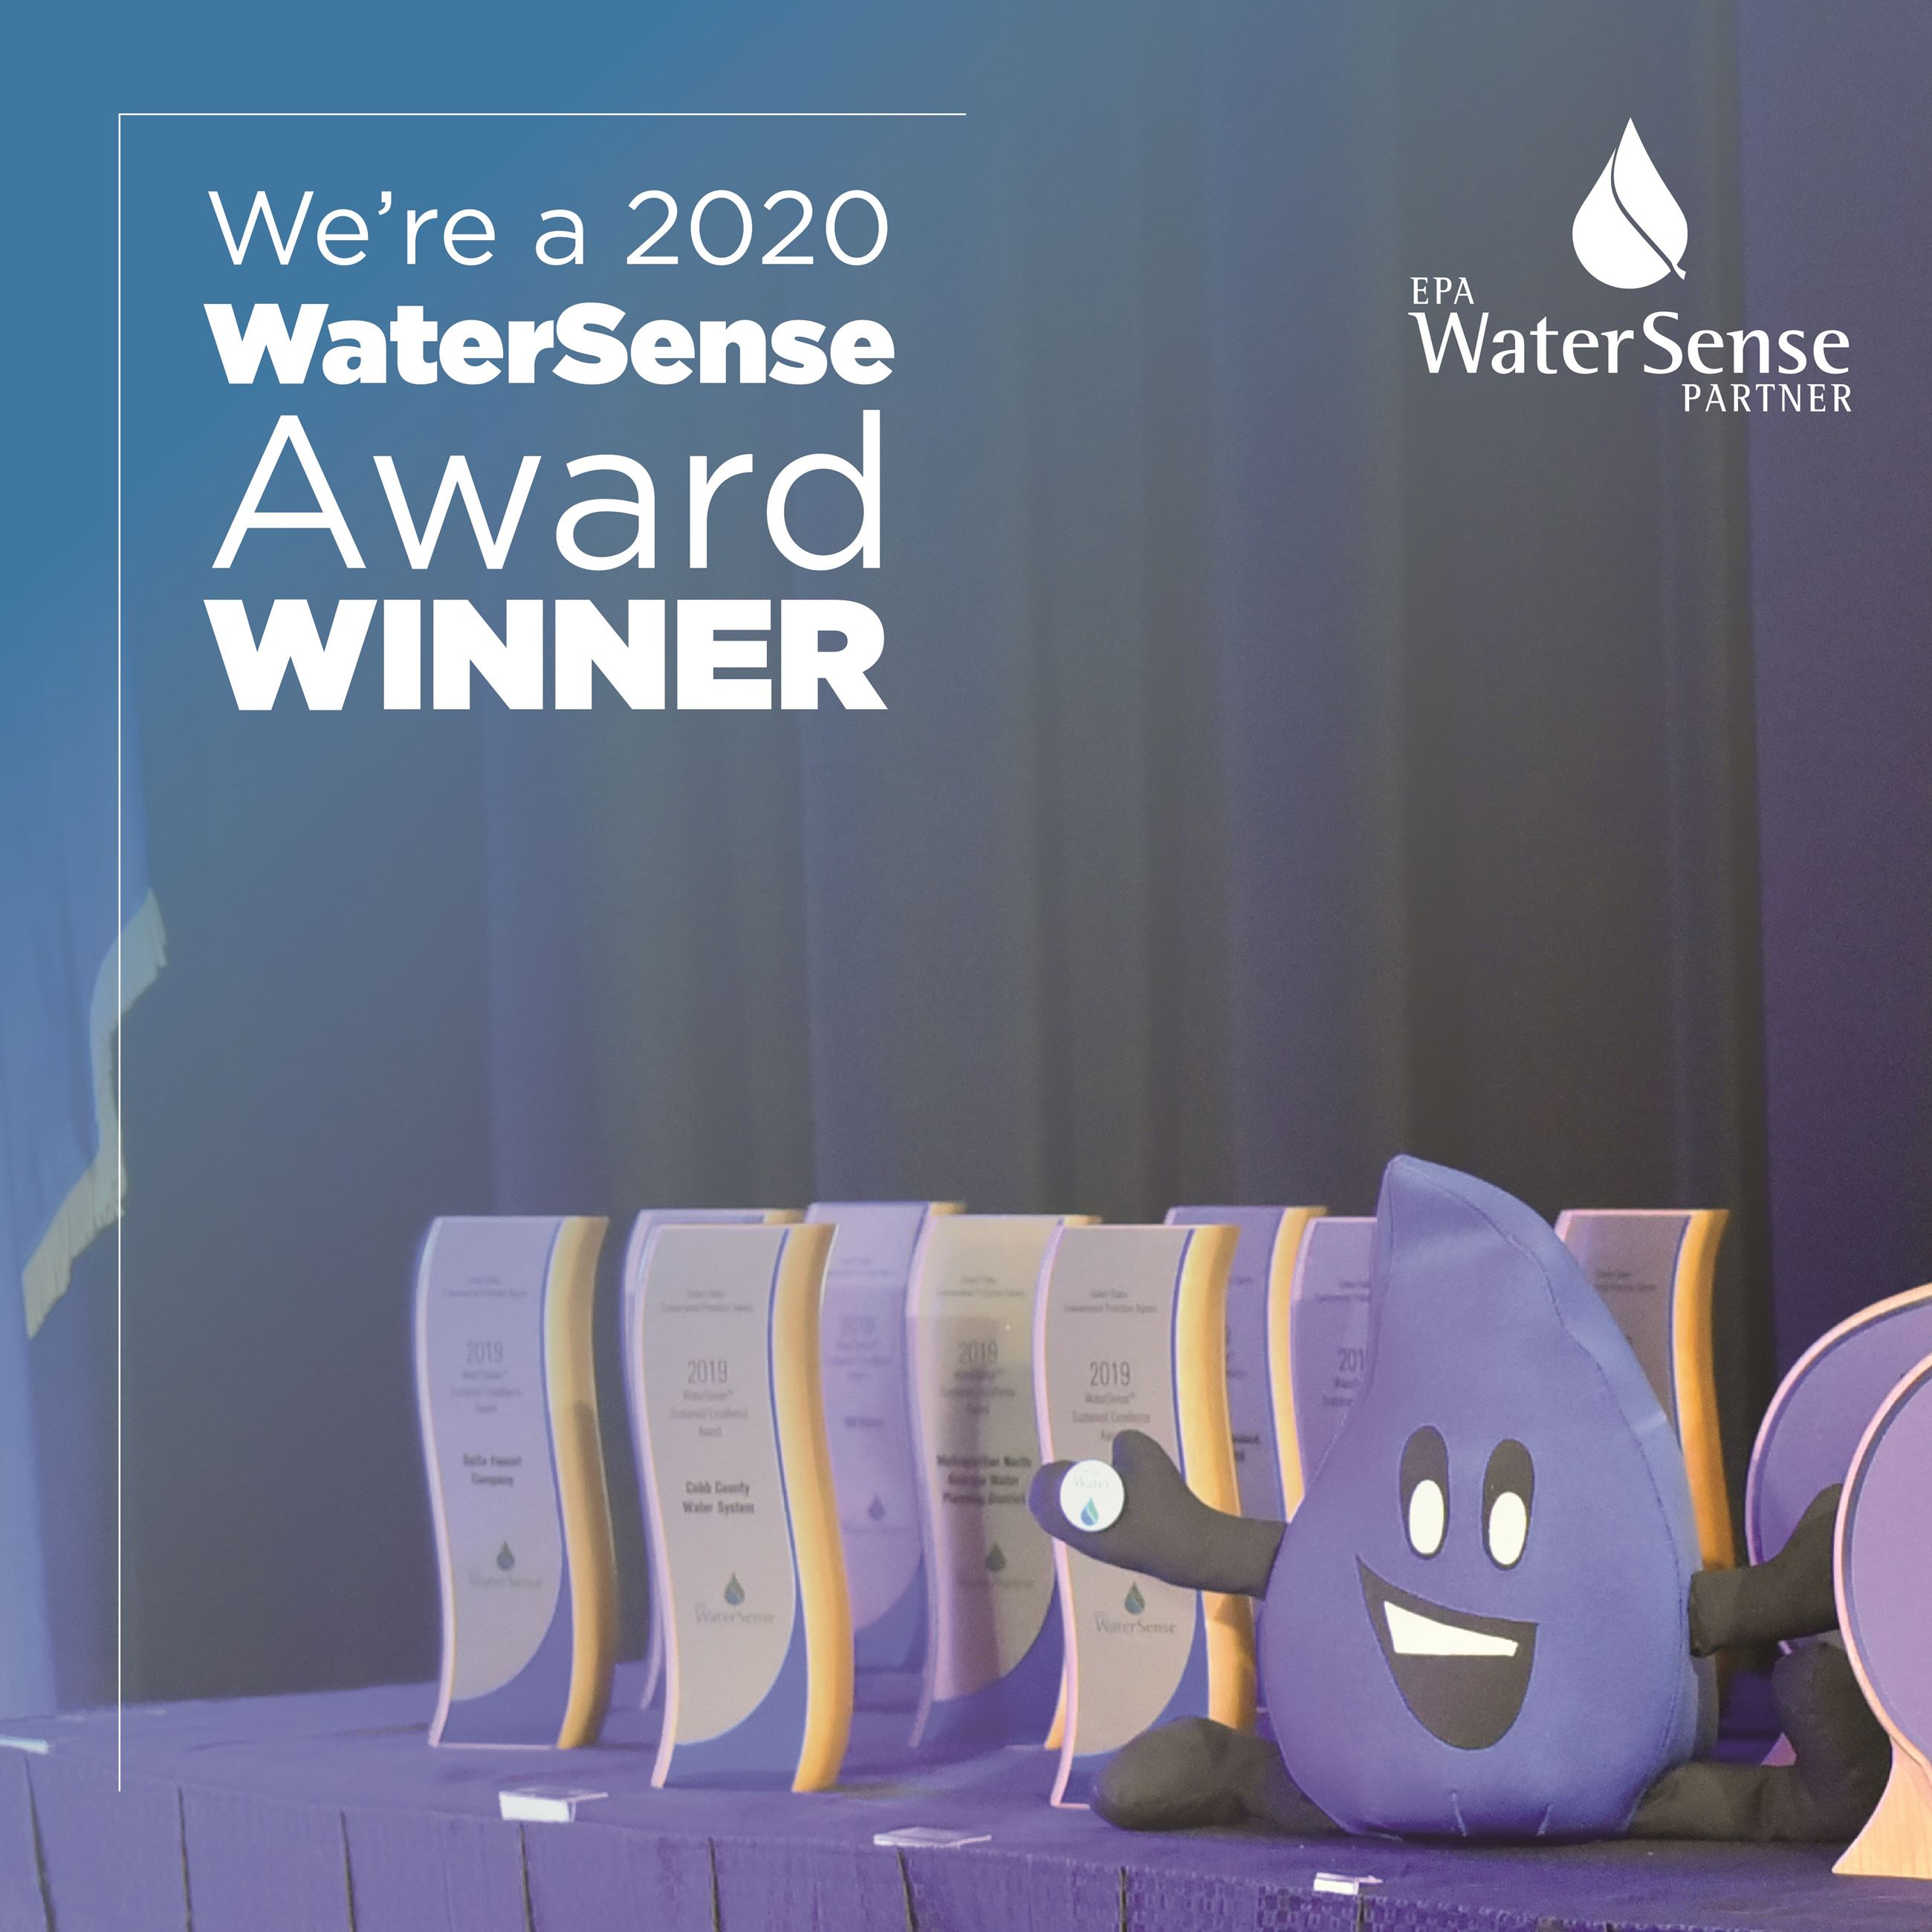 2020 WaterSense Award Winner graphic of Flo With Awards